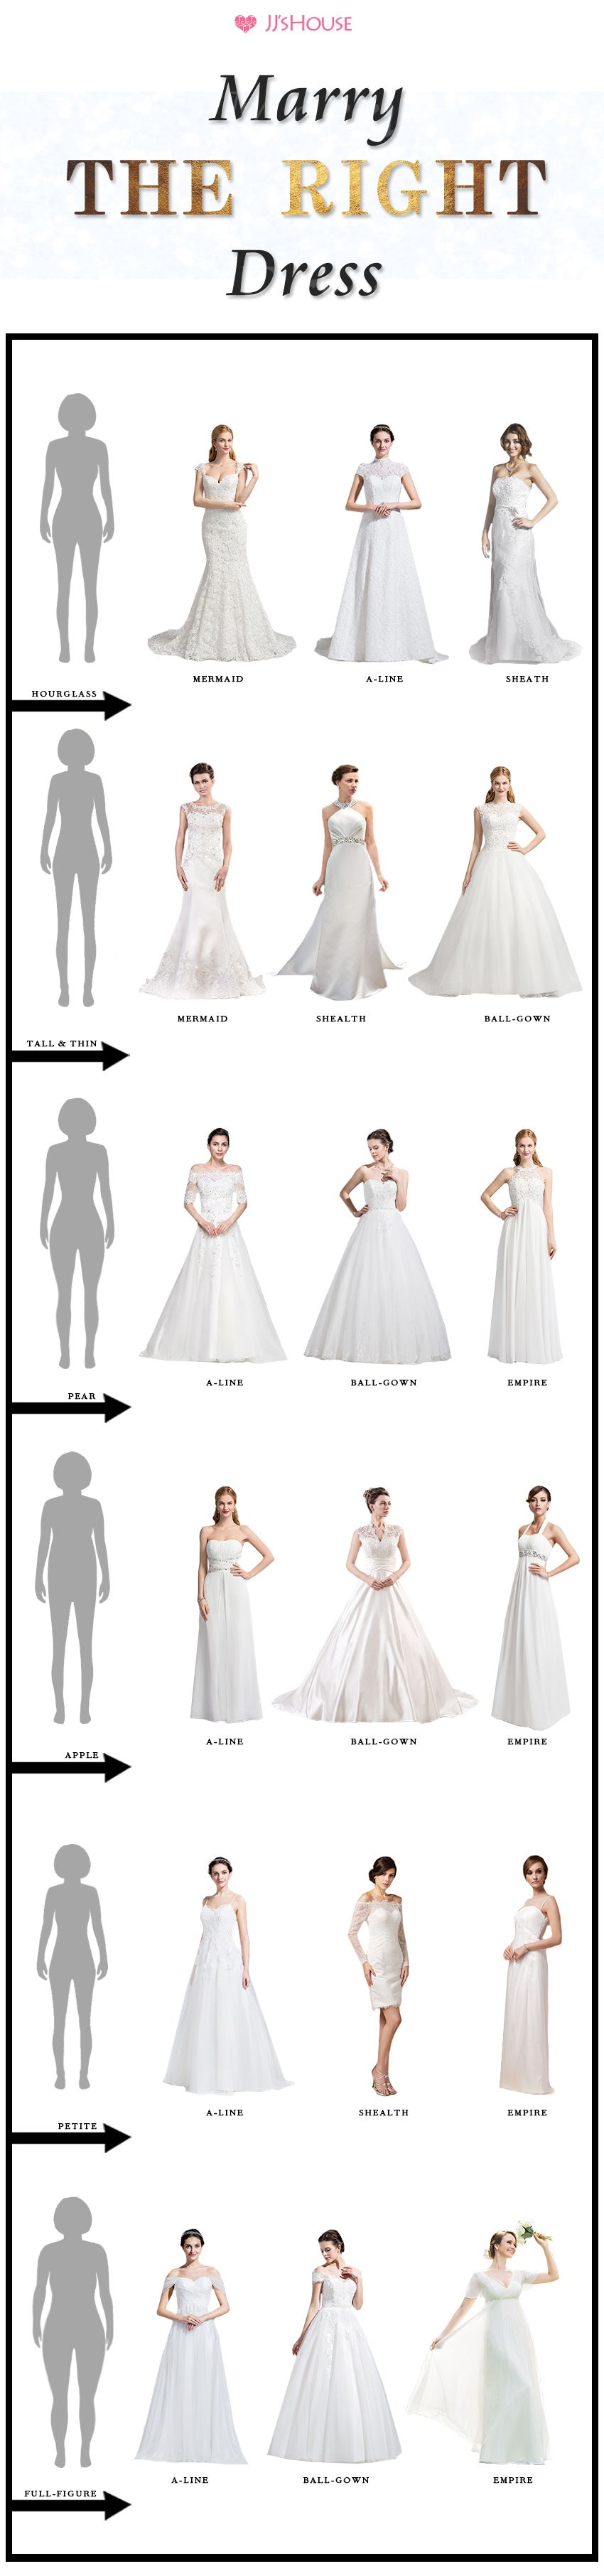 Wedding Dresses Bridal Dresses 2021 Empire Wedding Dress Wedding Dresses Wedding Dress Styles